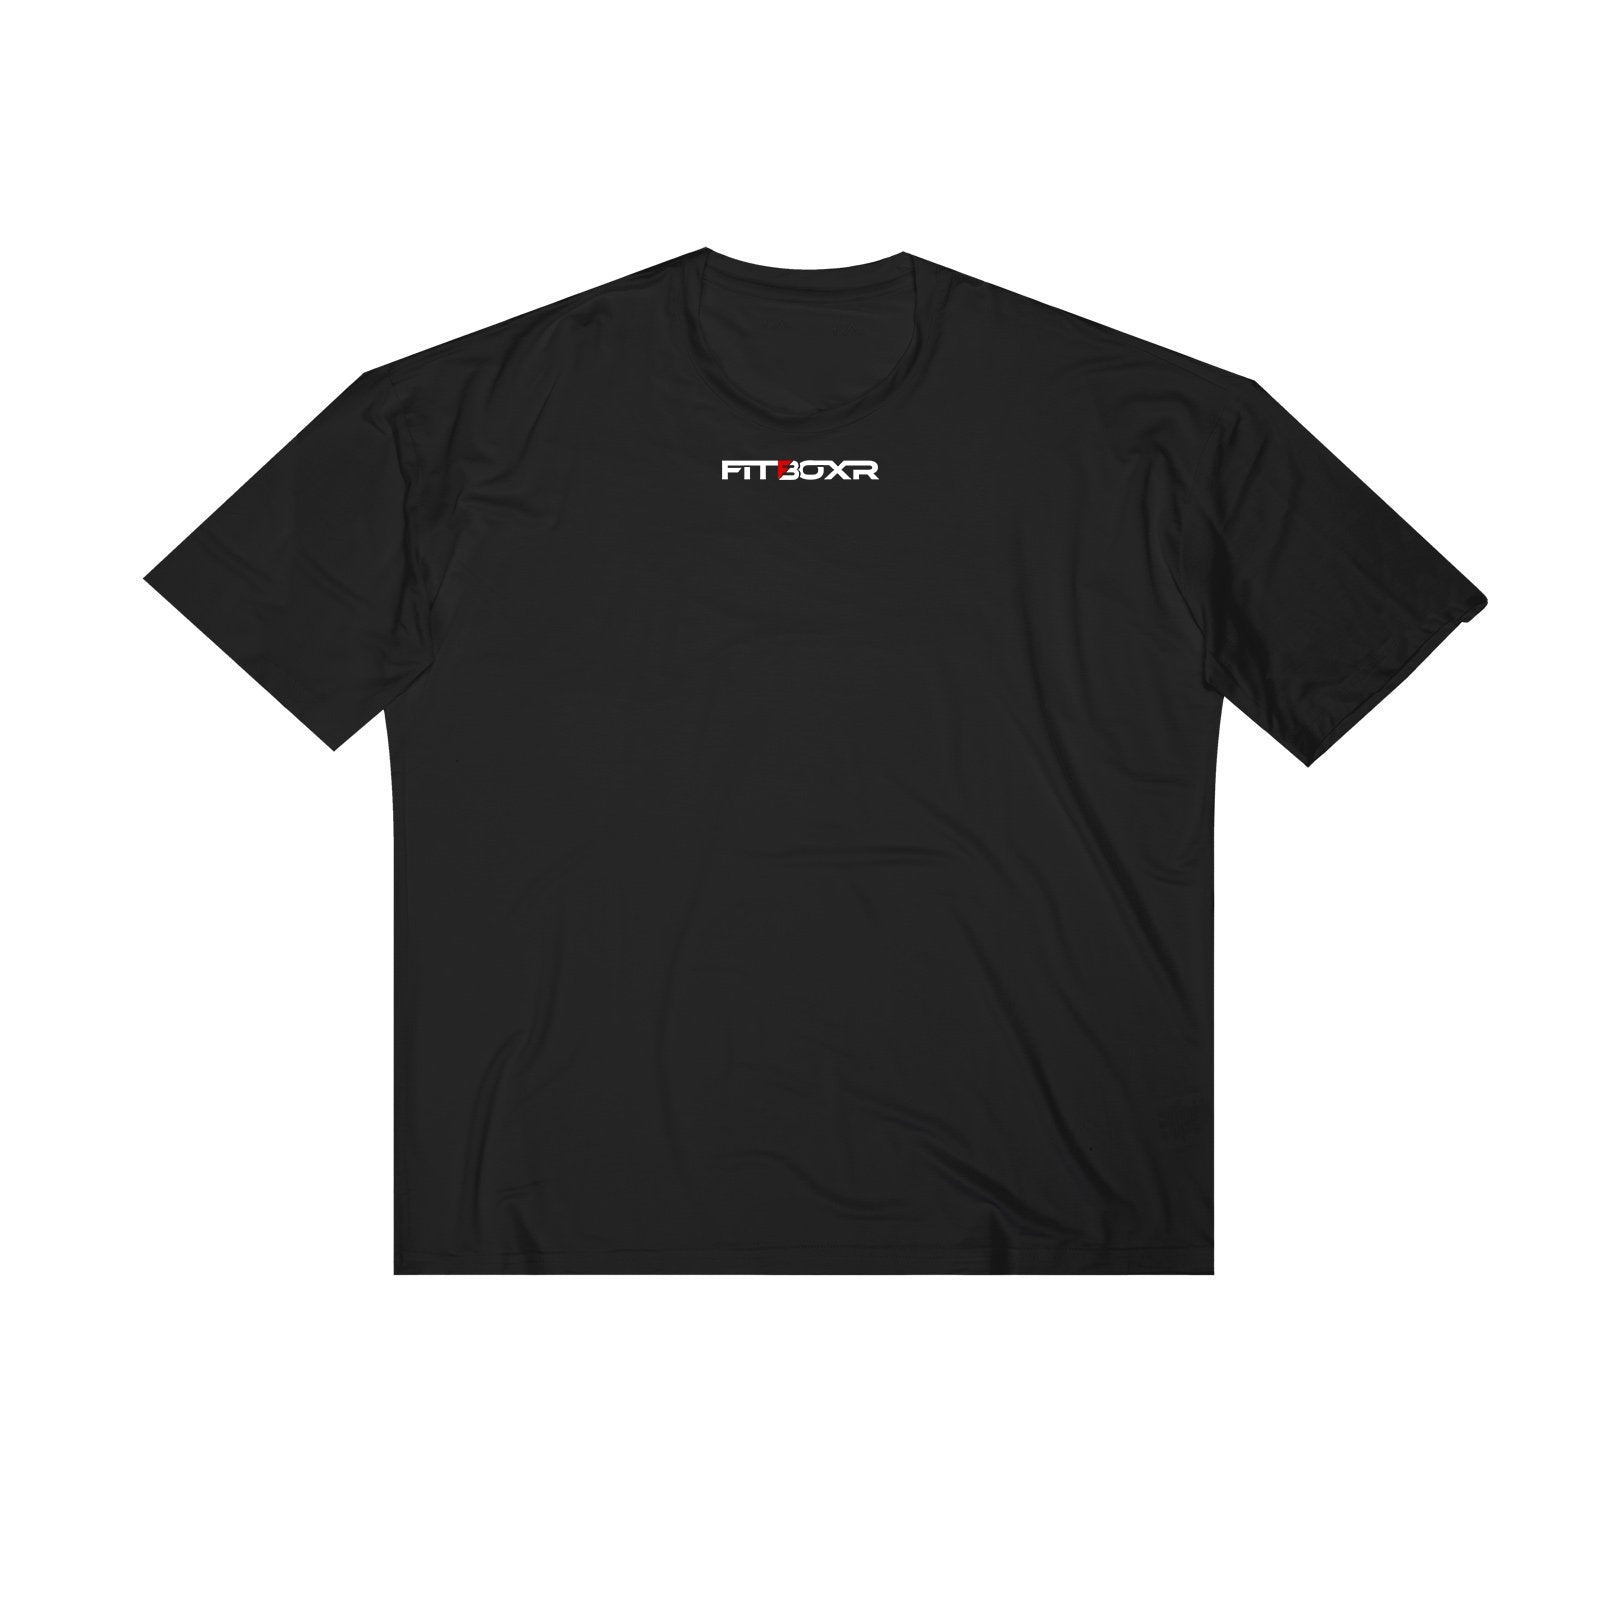 Stitched Logo Relaxed Tee - Black